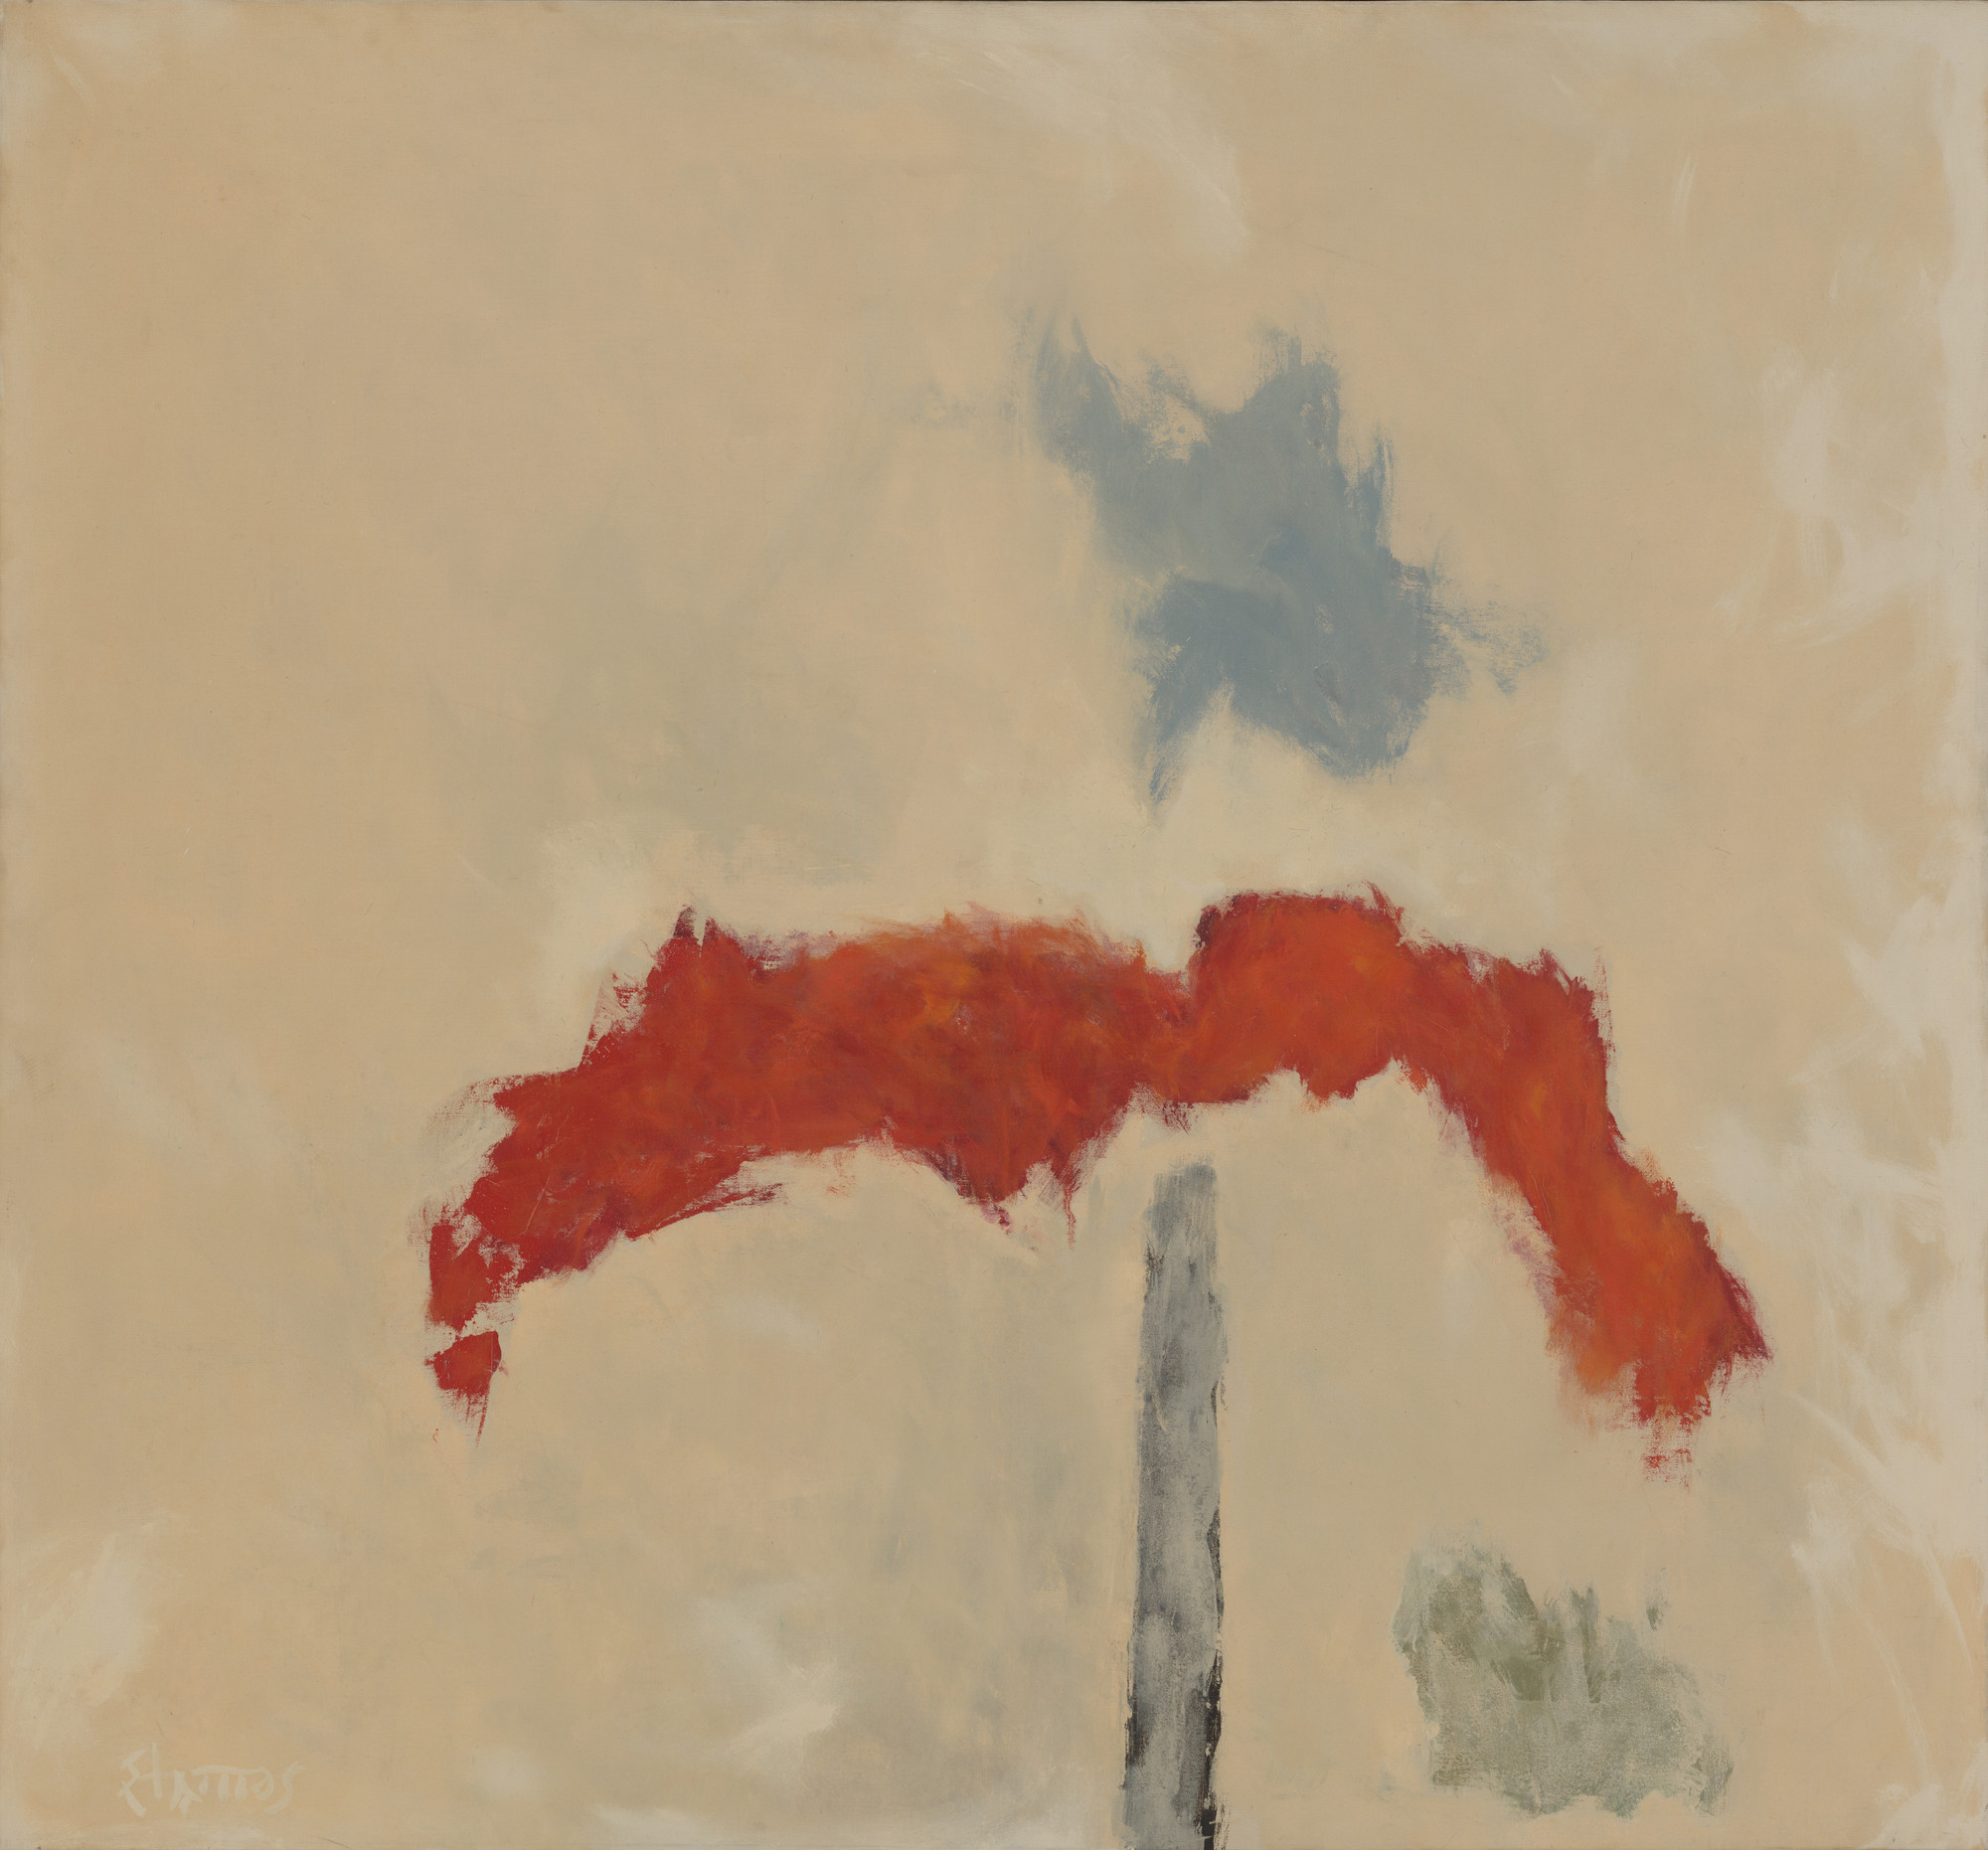 Theodoros Stamos. Red Mound Number 1. 1963-64